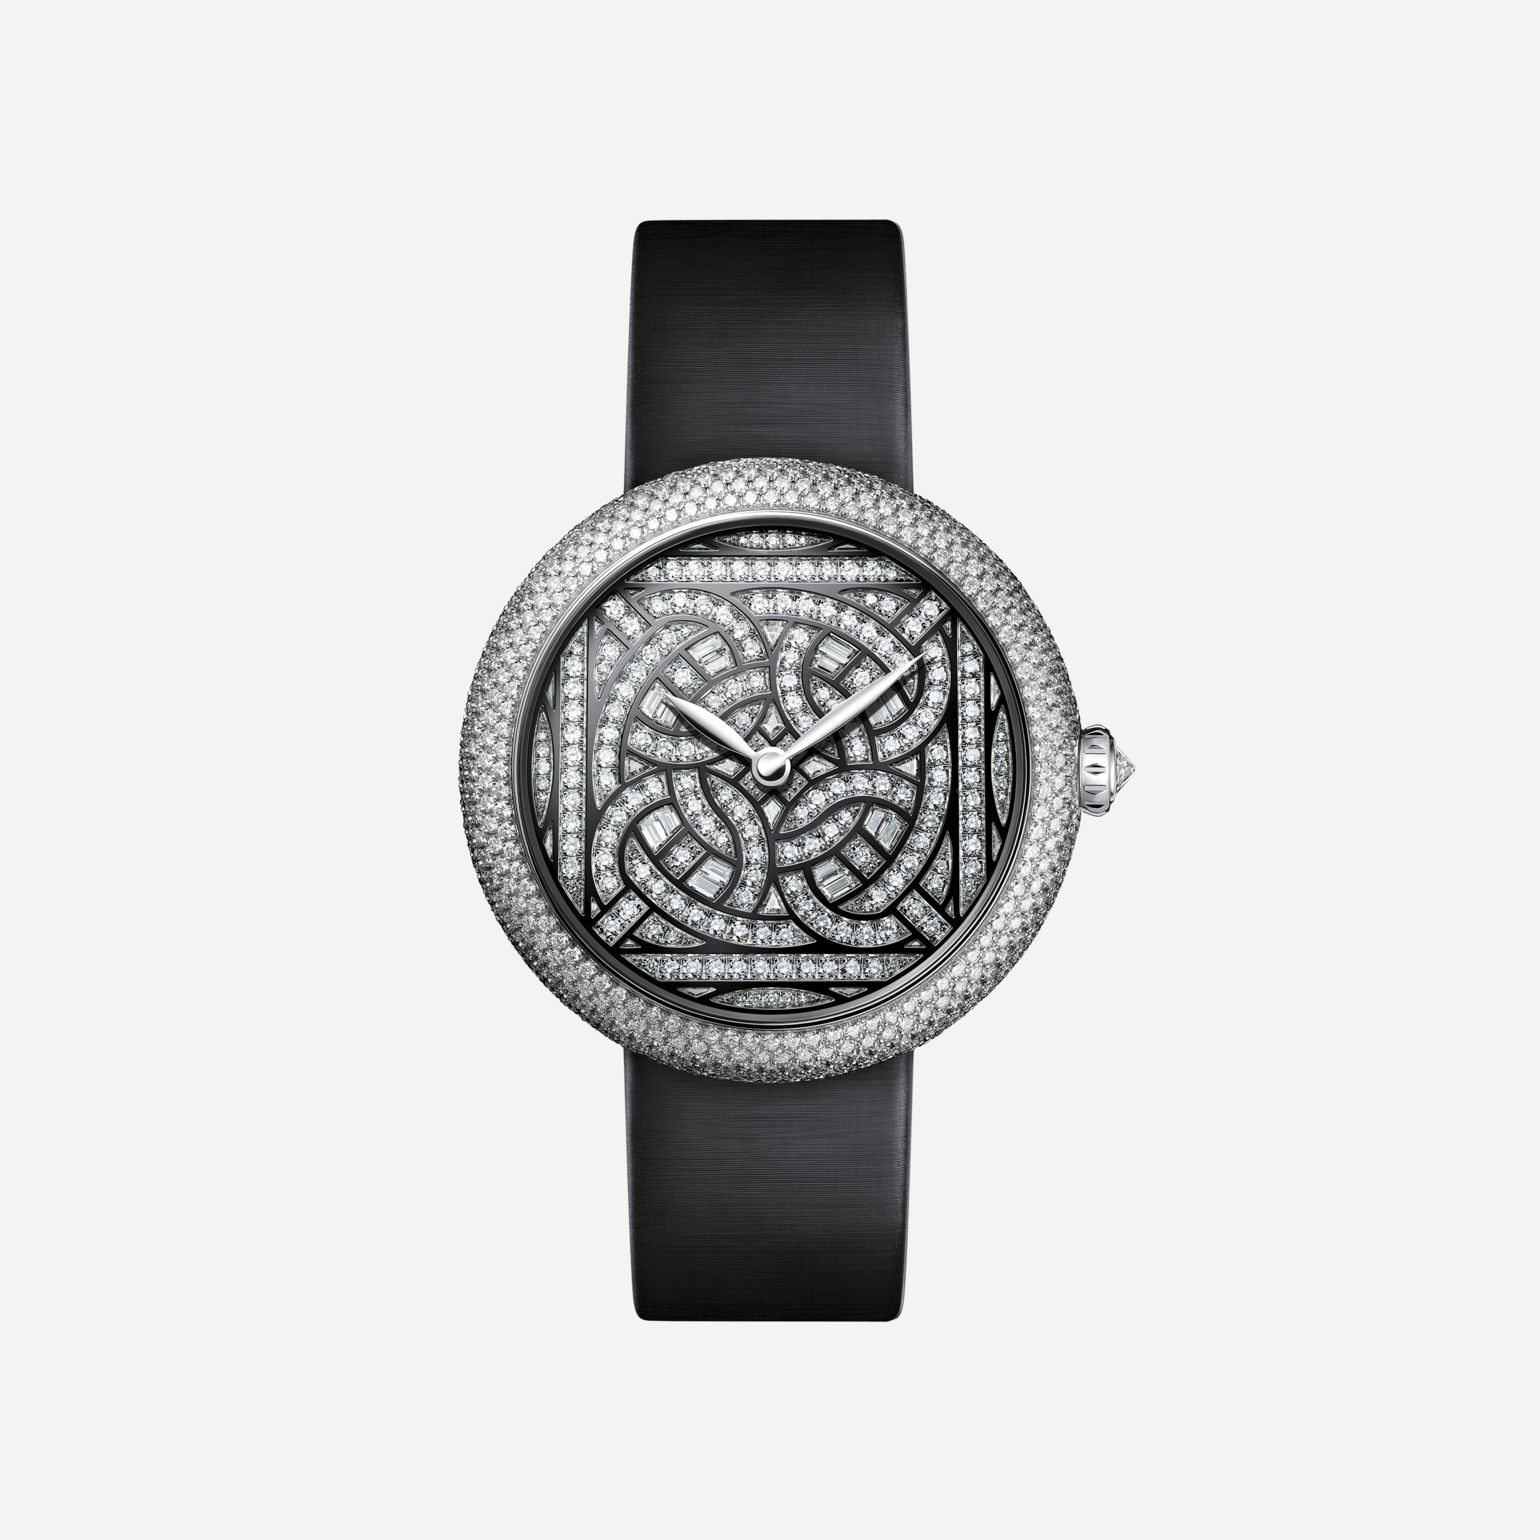 Mademoiselle Privé Watch White gold and diamonds